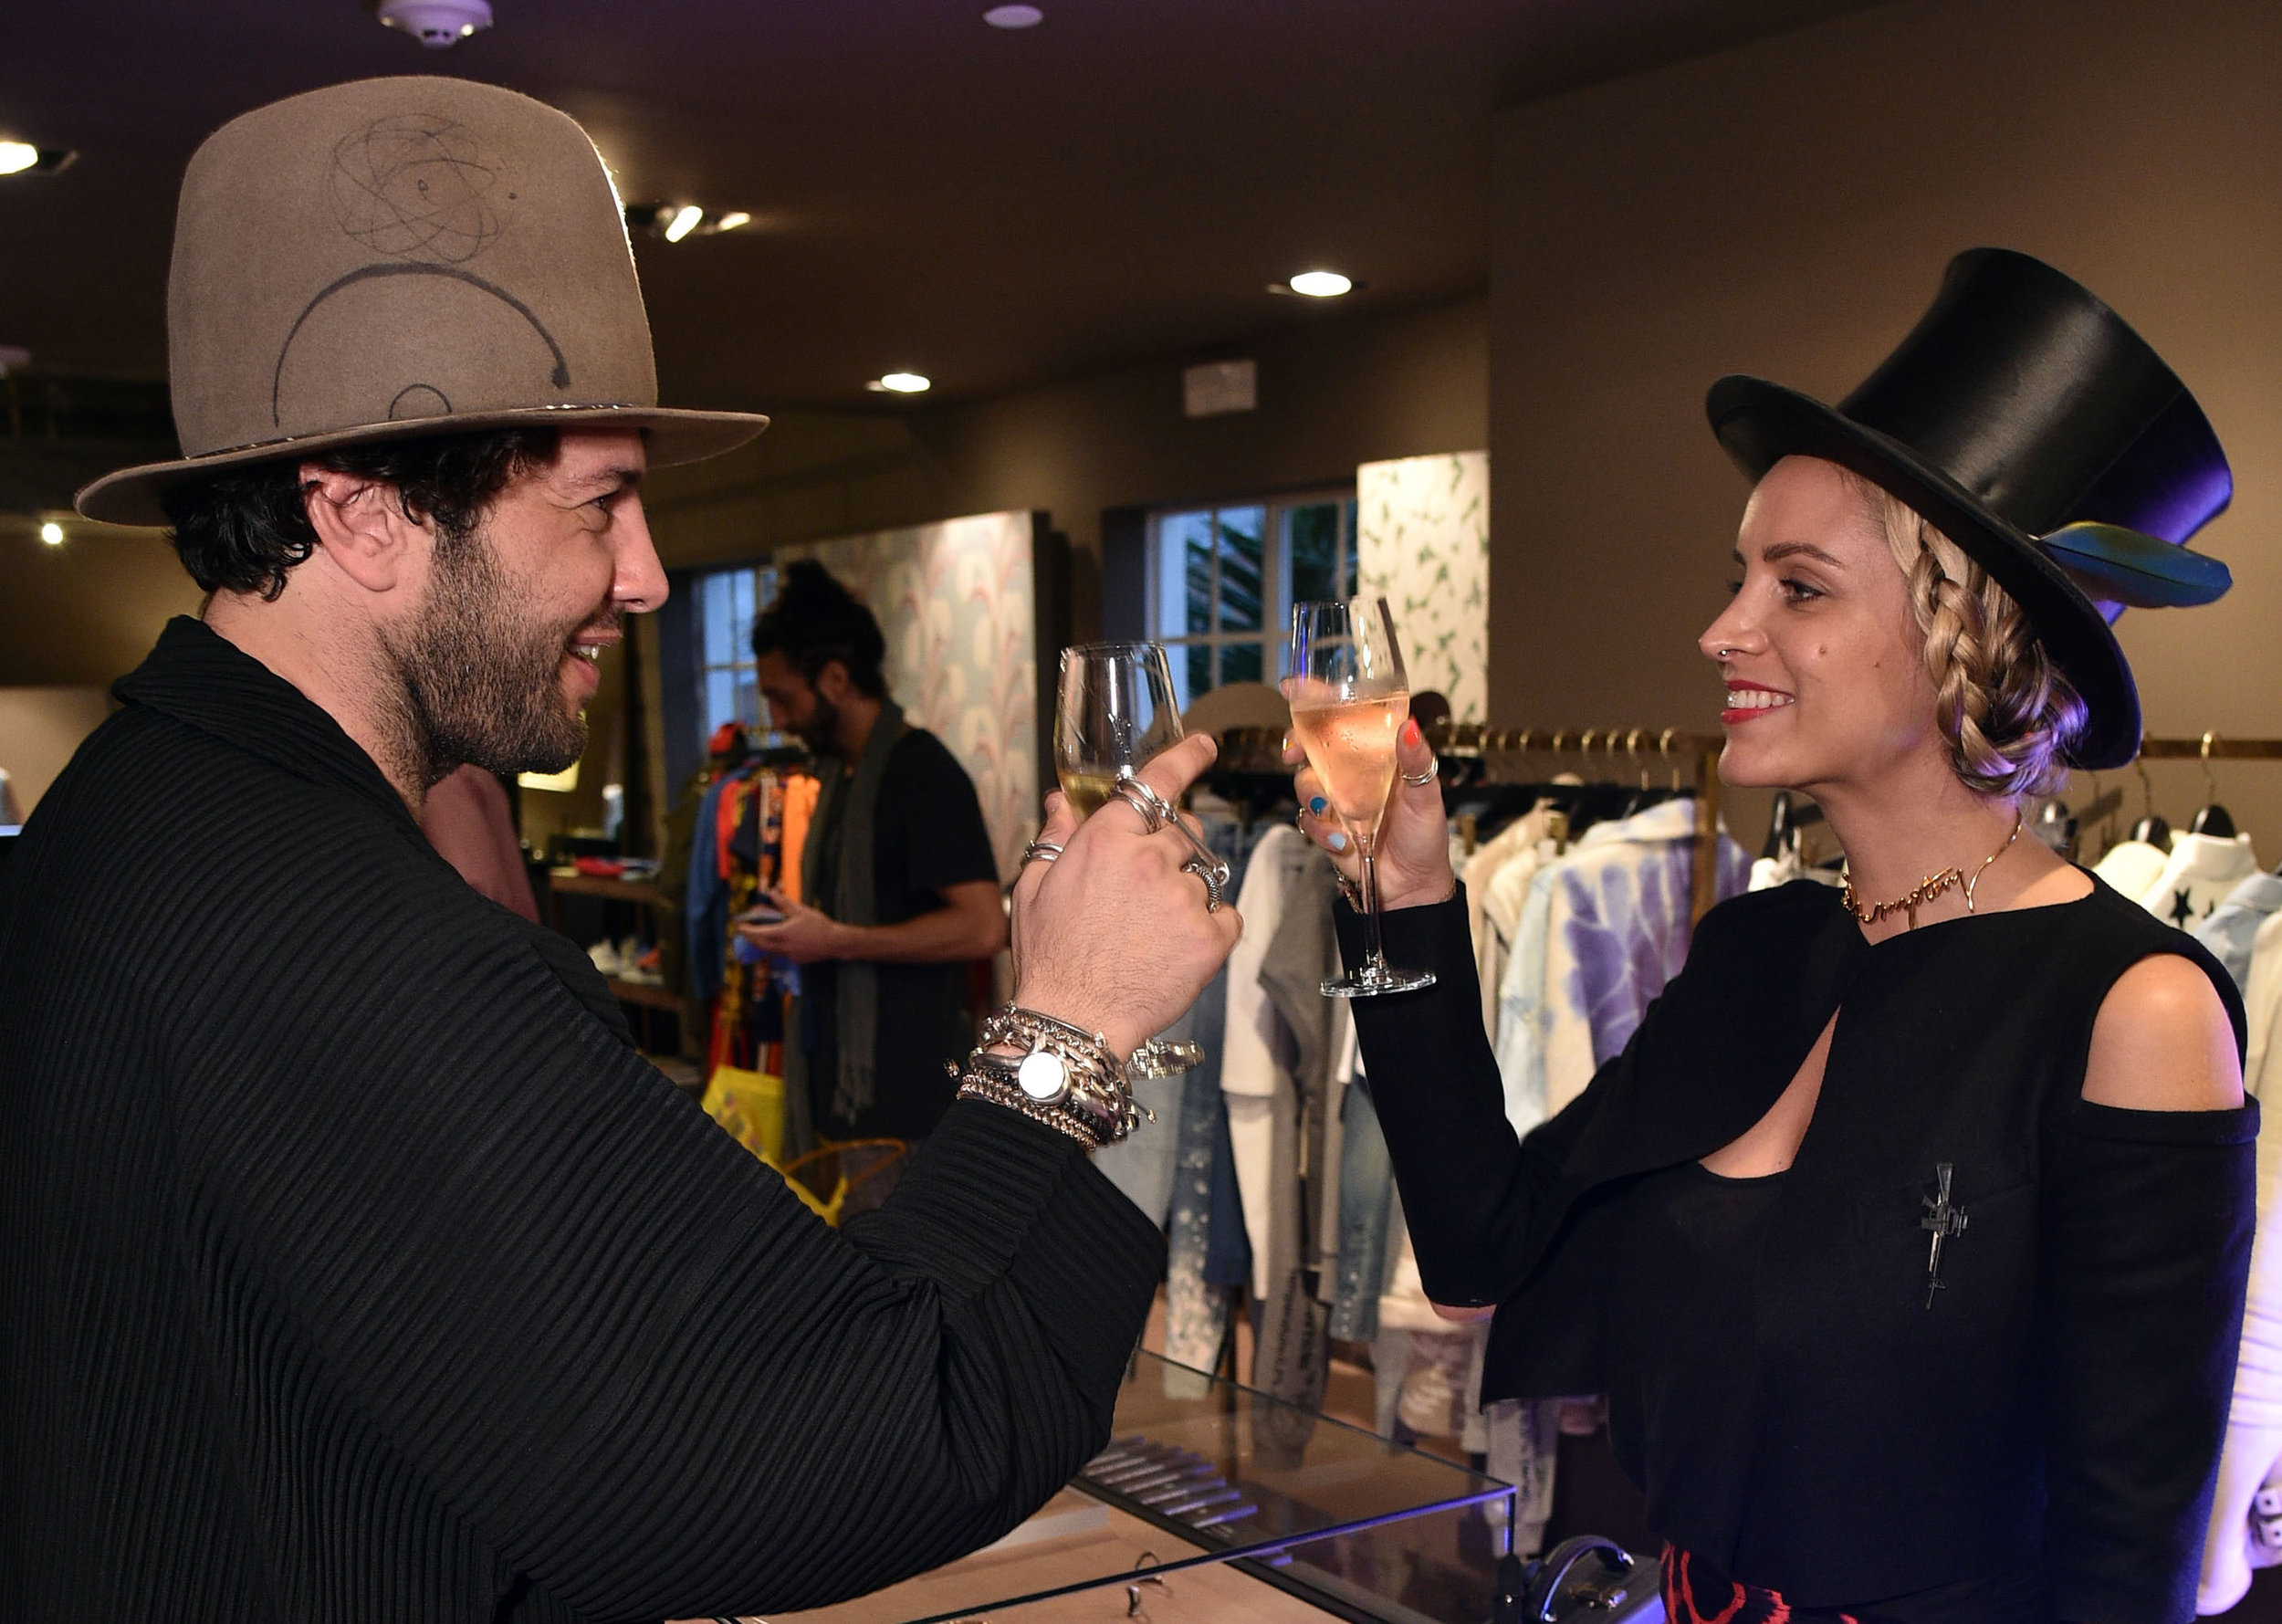 MAOR COHEN X OLIVIA STEELE LAUNCH AT THE WEBSTER MIAMI DEC 5 2017886631692 copy.jpg